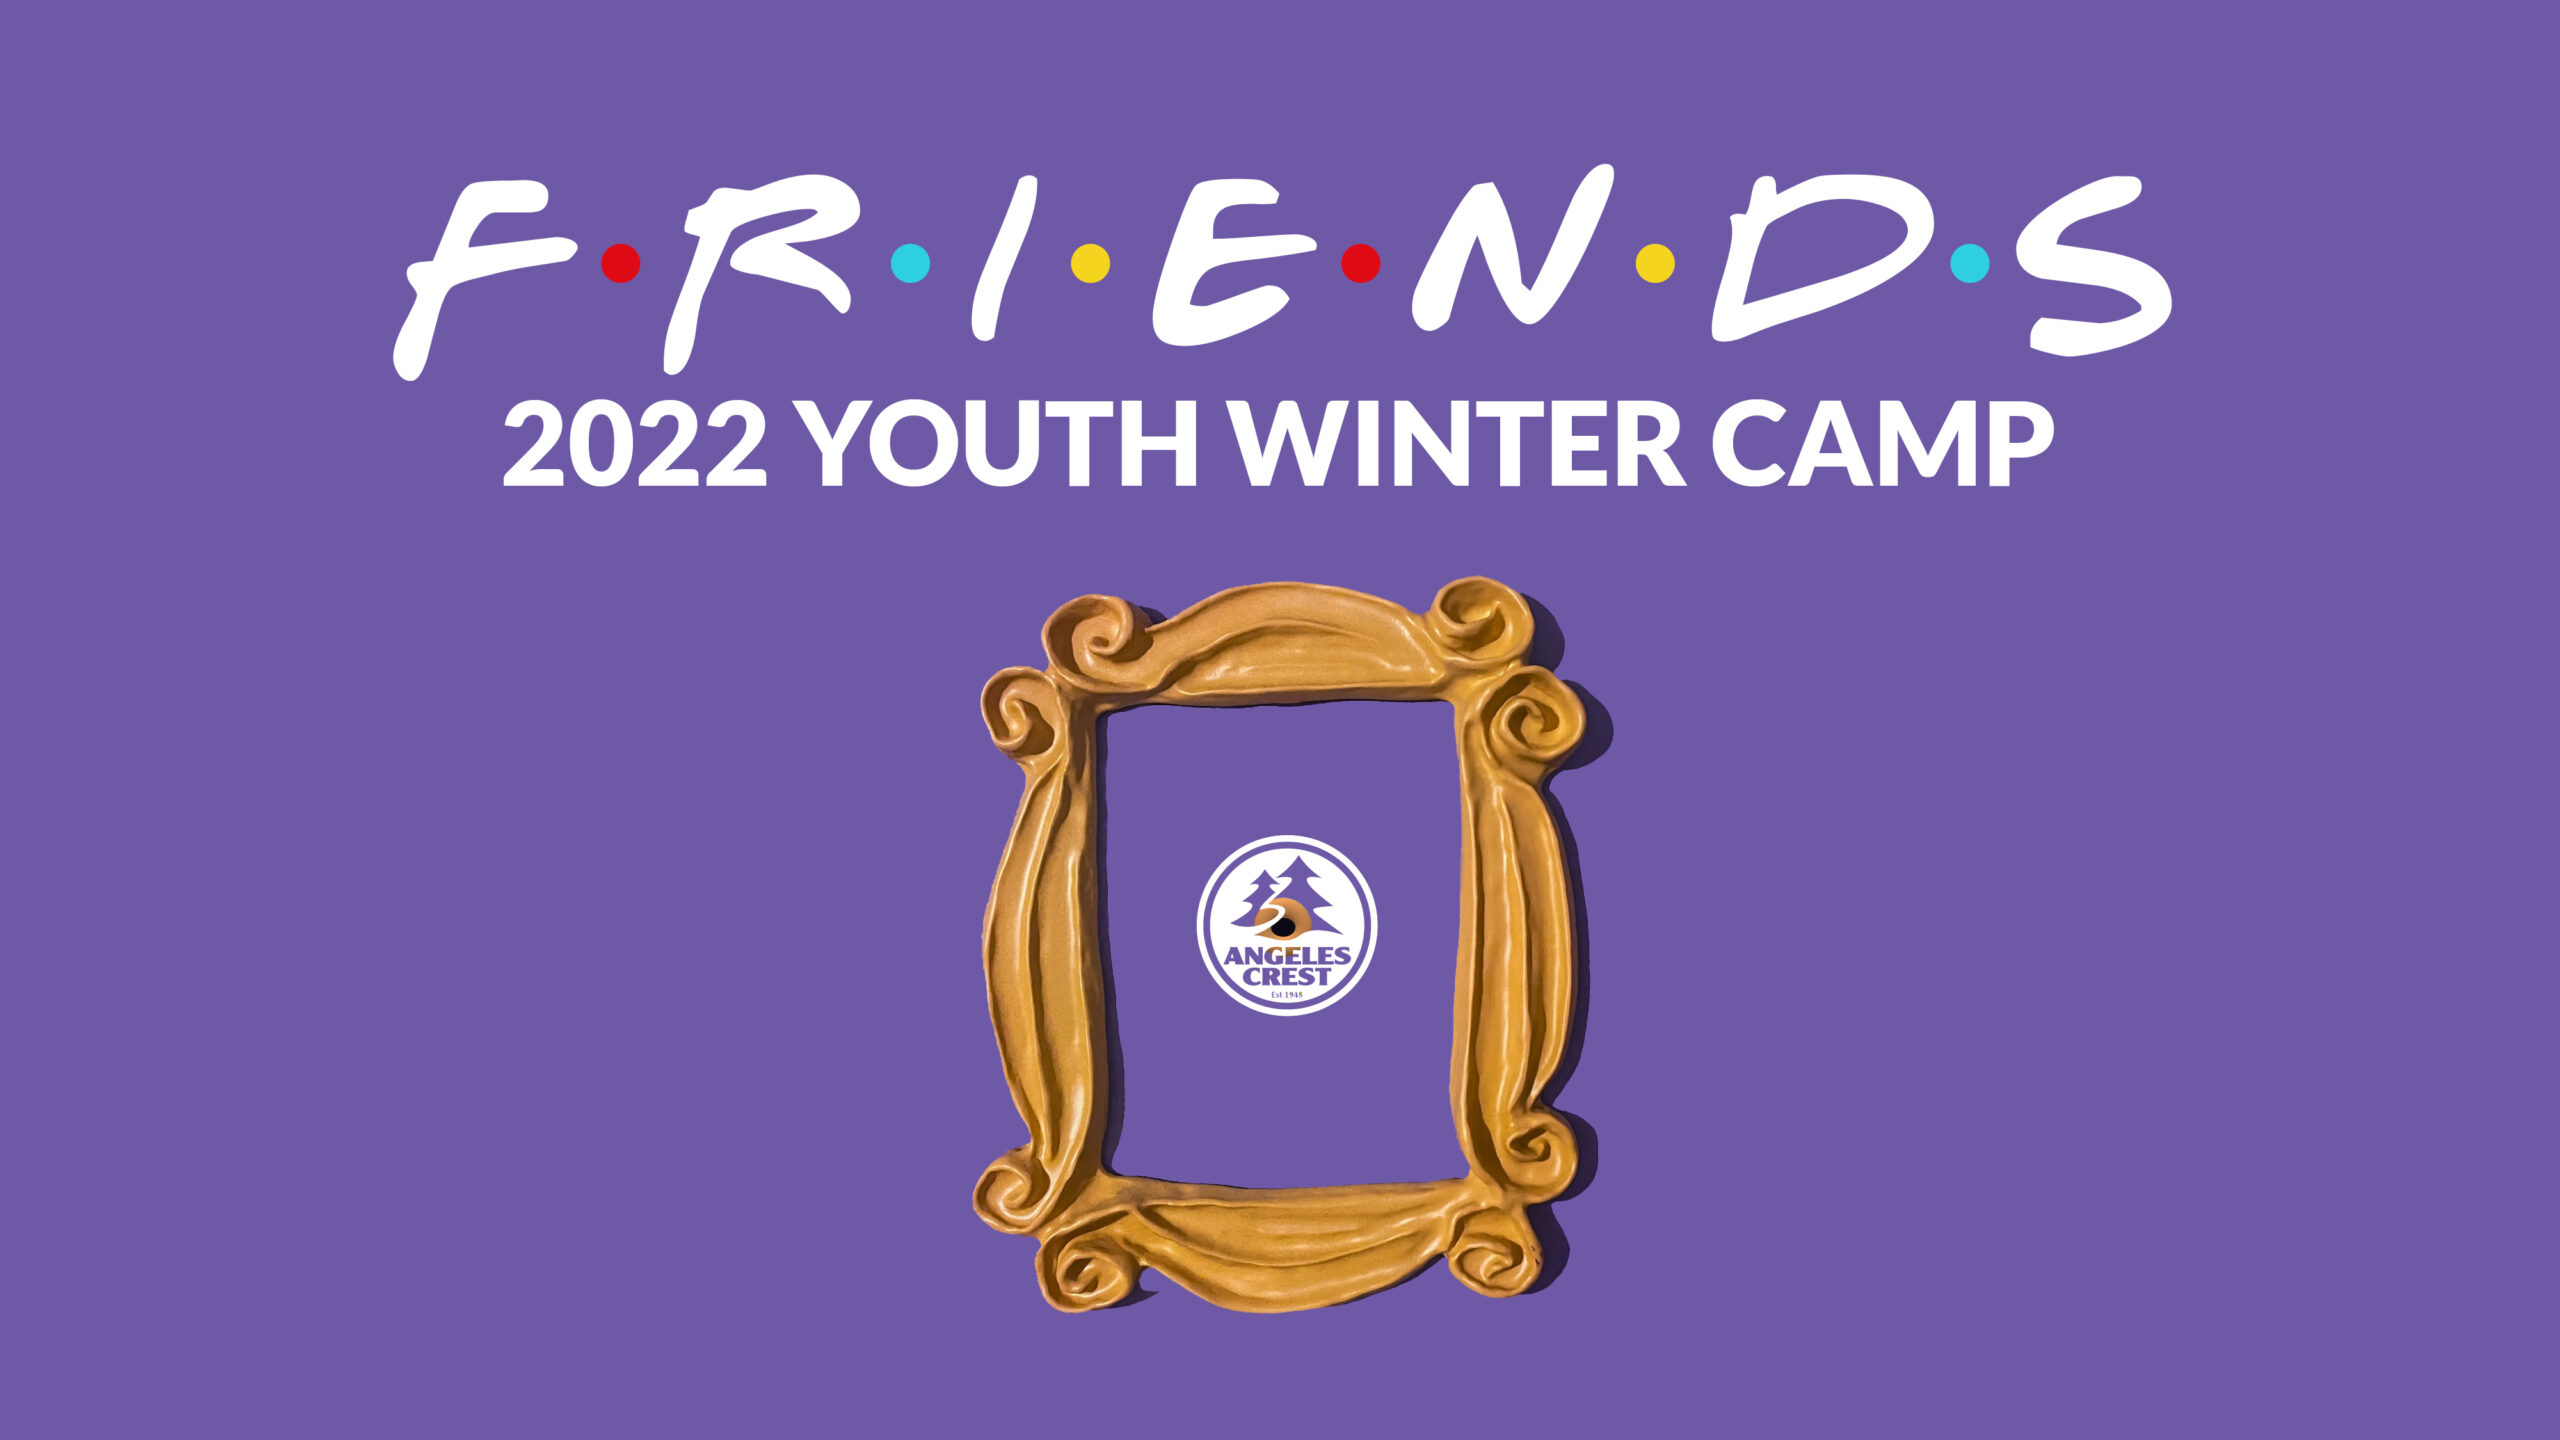 Angeles Crest Youth Winter Theme - Friends